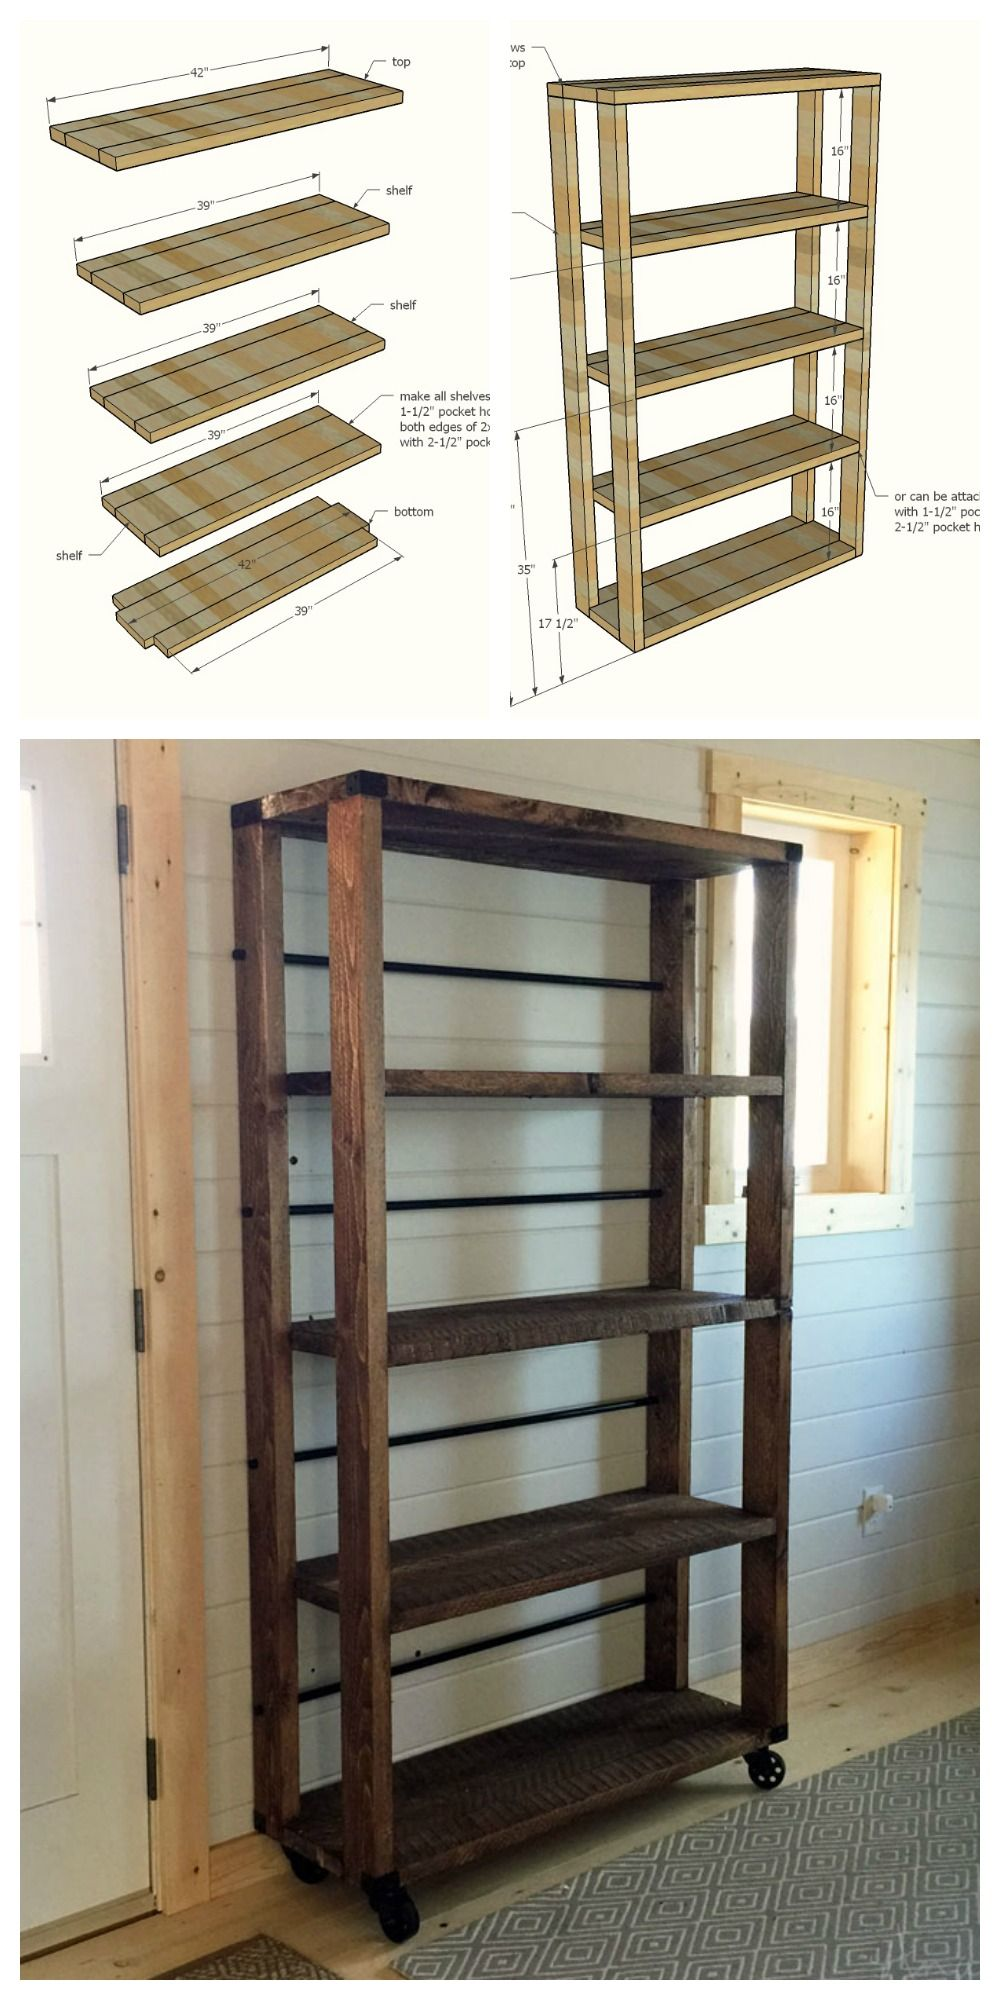 furniture plans 2 x 4 tutorials pinterest furniture wood and